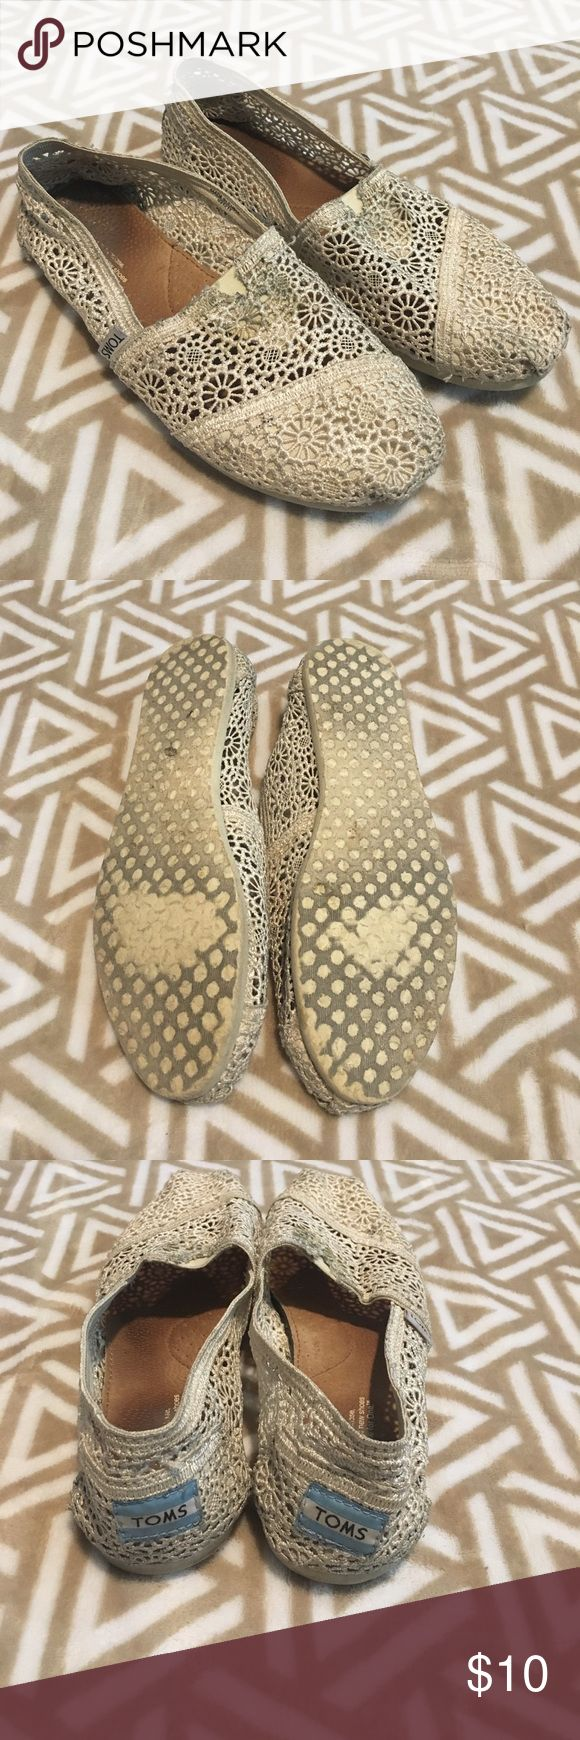 Cream lace Toms Cute cream colored lace Toms! Could be cleaned TOMS Shoes Flats & Loafers